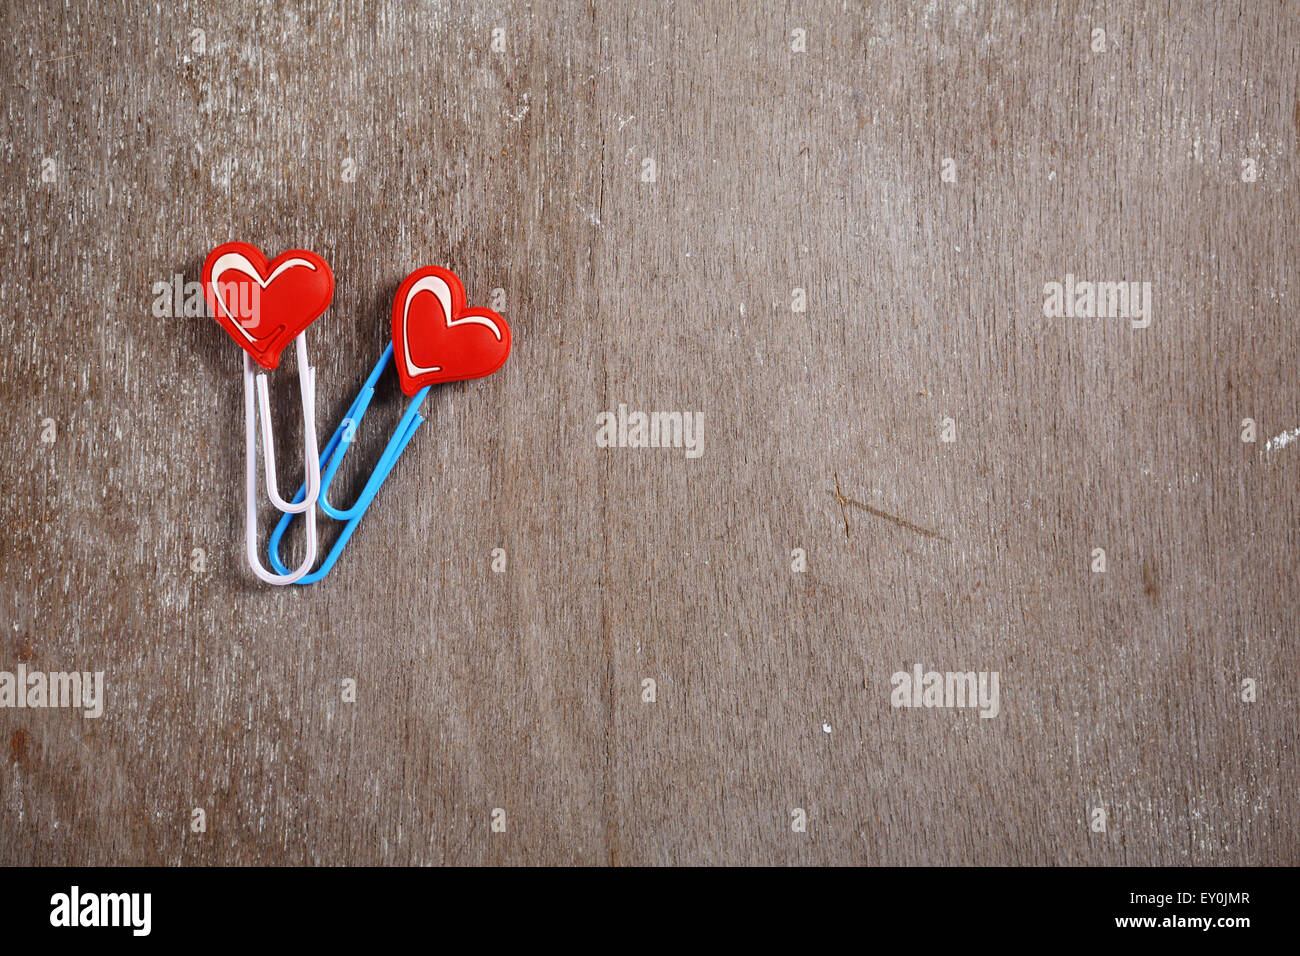 Clip in the form of heart, valentines day - Stock Image